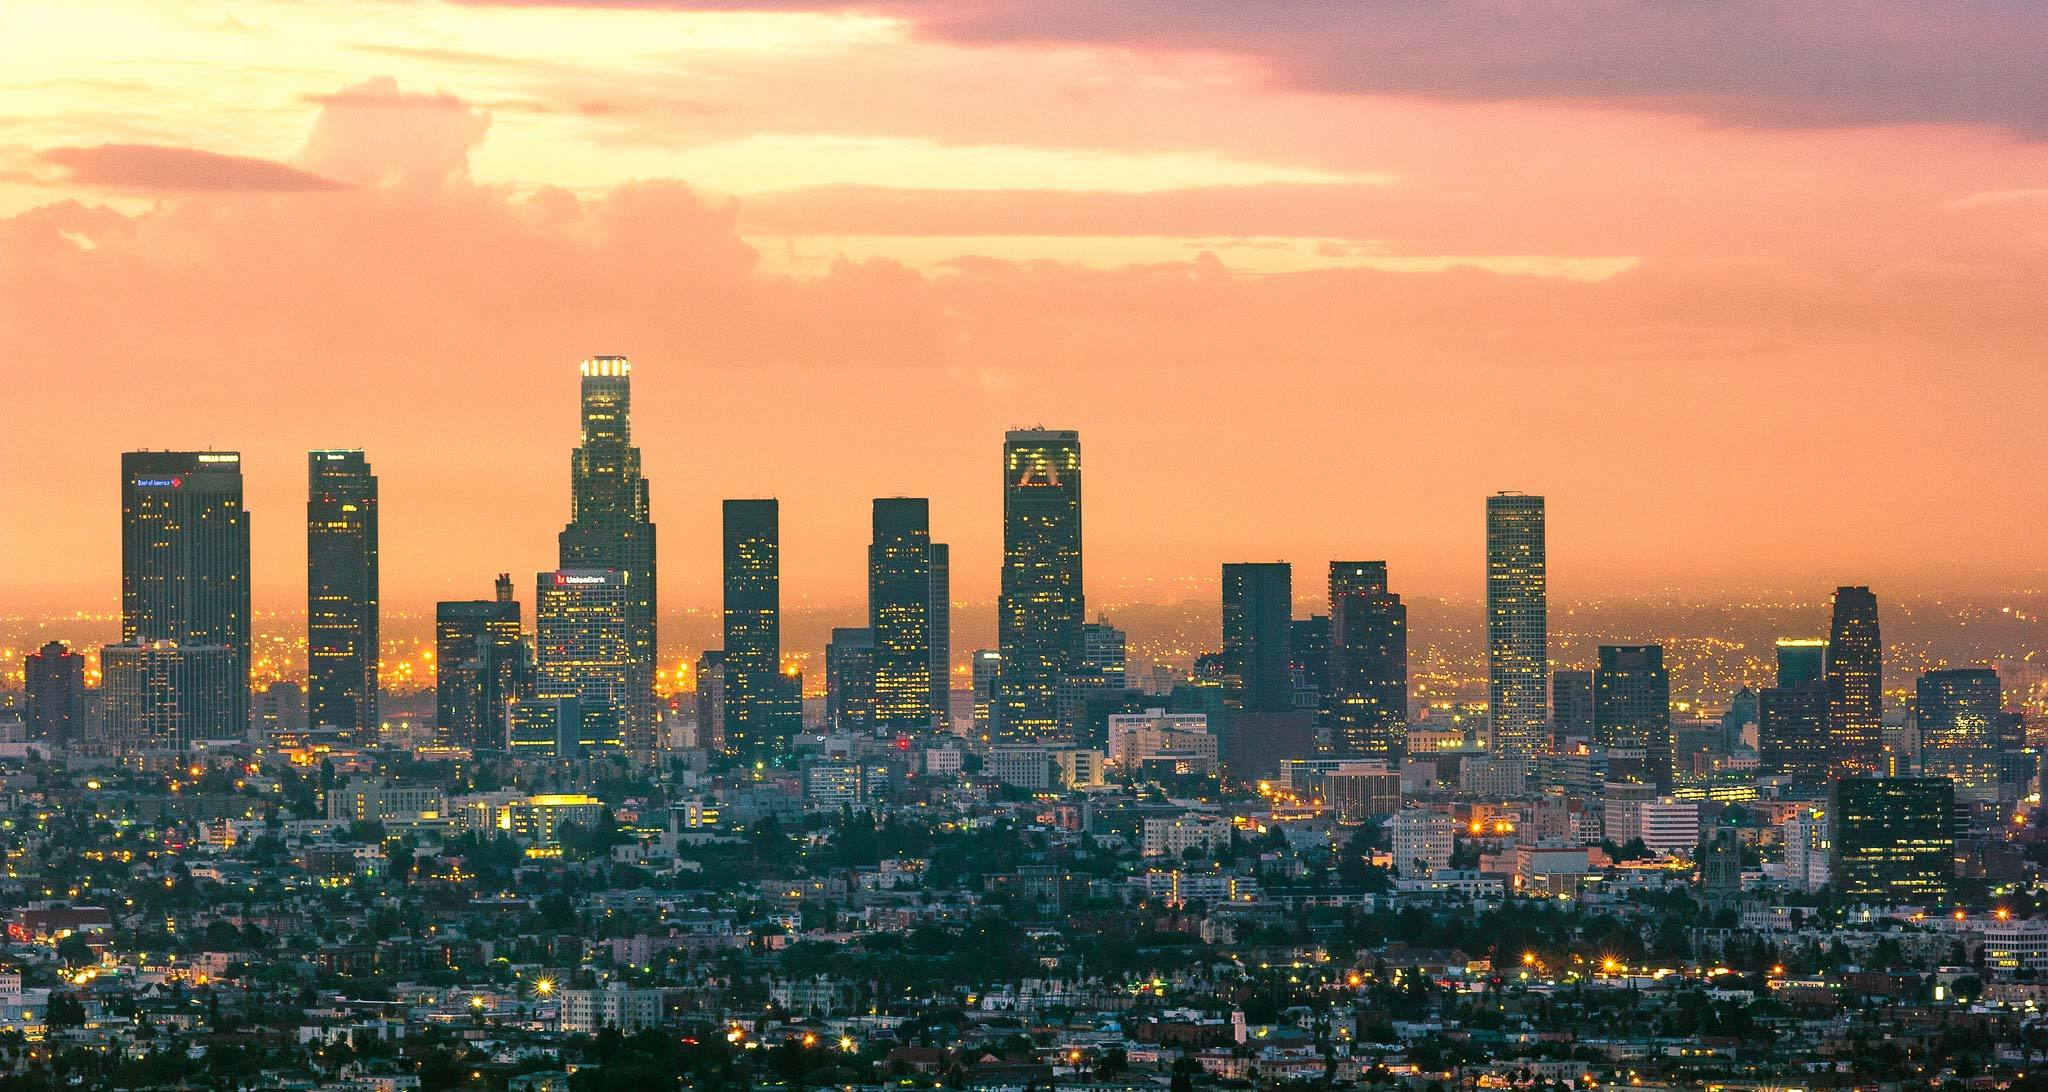 Meet L.A. Official Los Angeles CVB | Discover Los Angeles